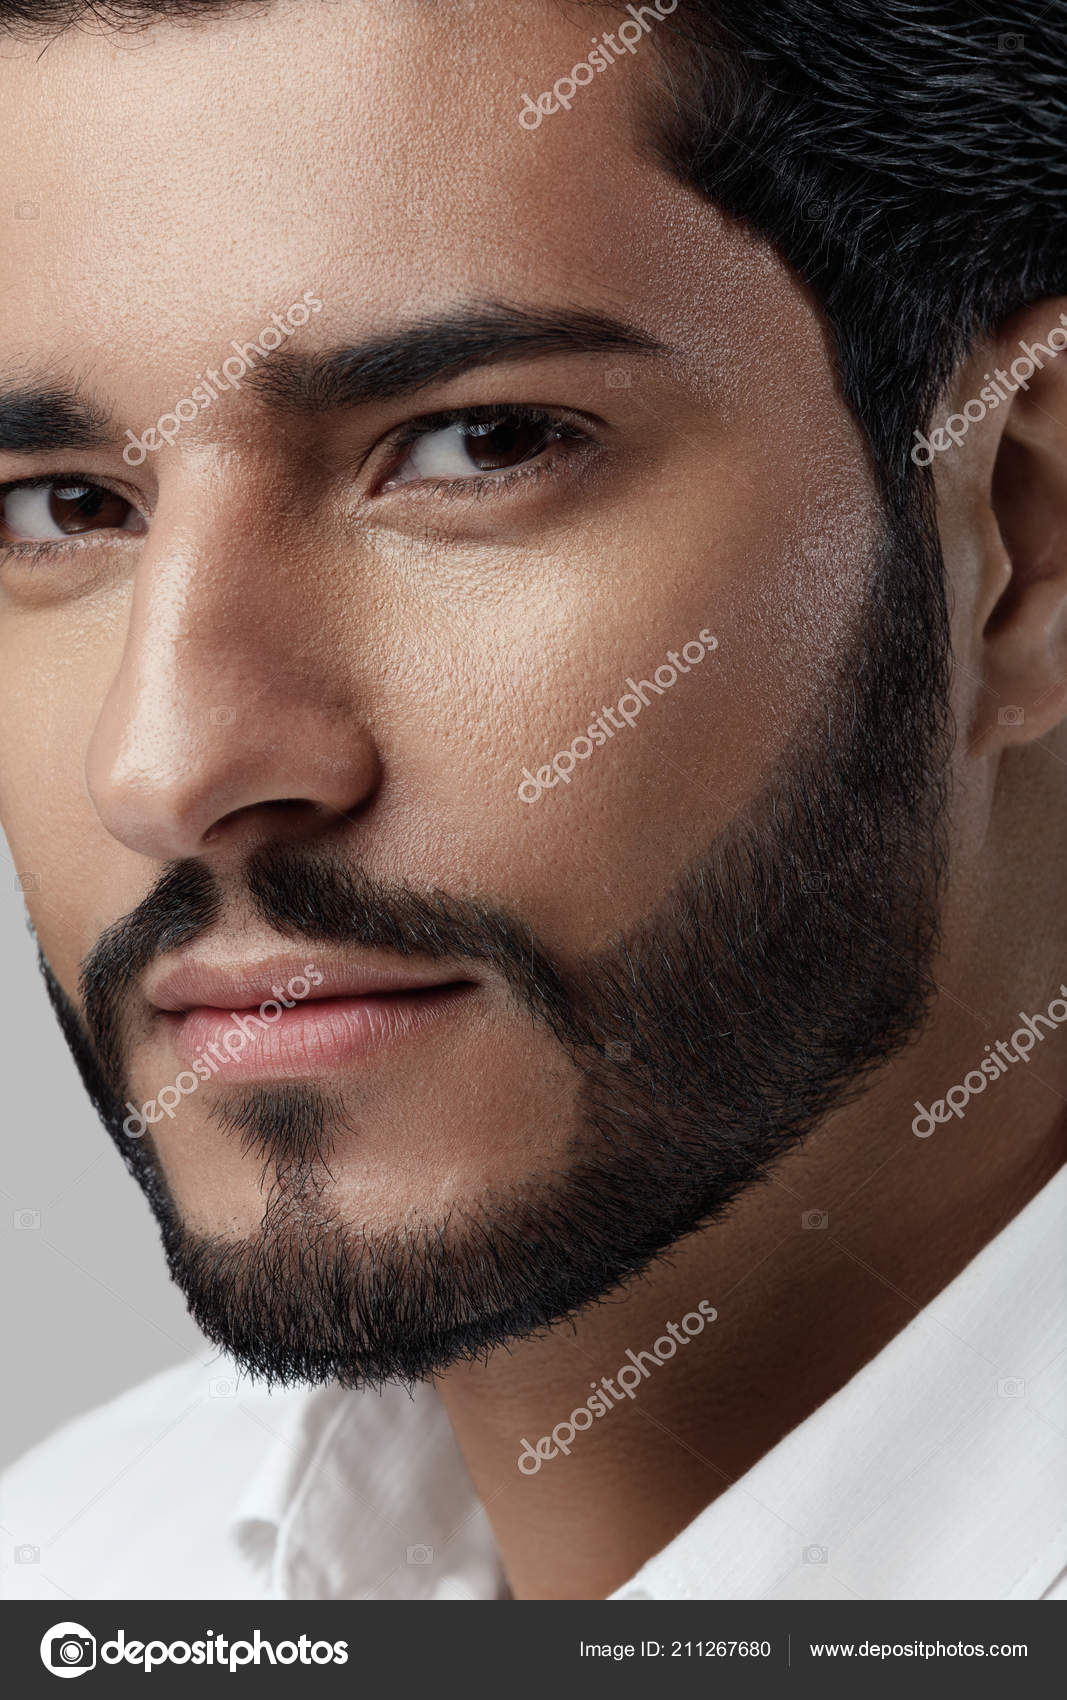 Pics: black beard styles | Handsome Man With Beard Style And